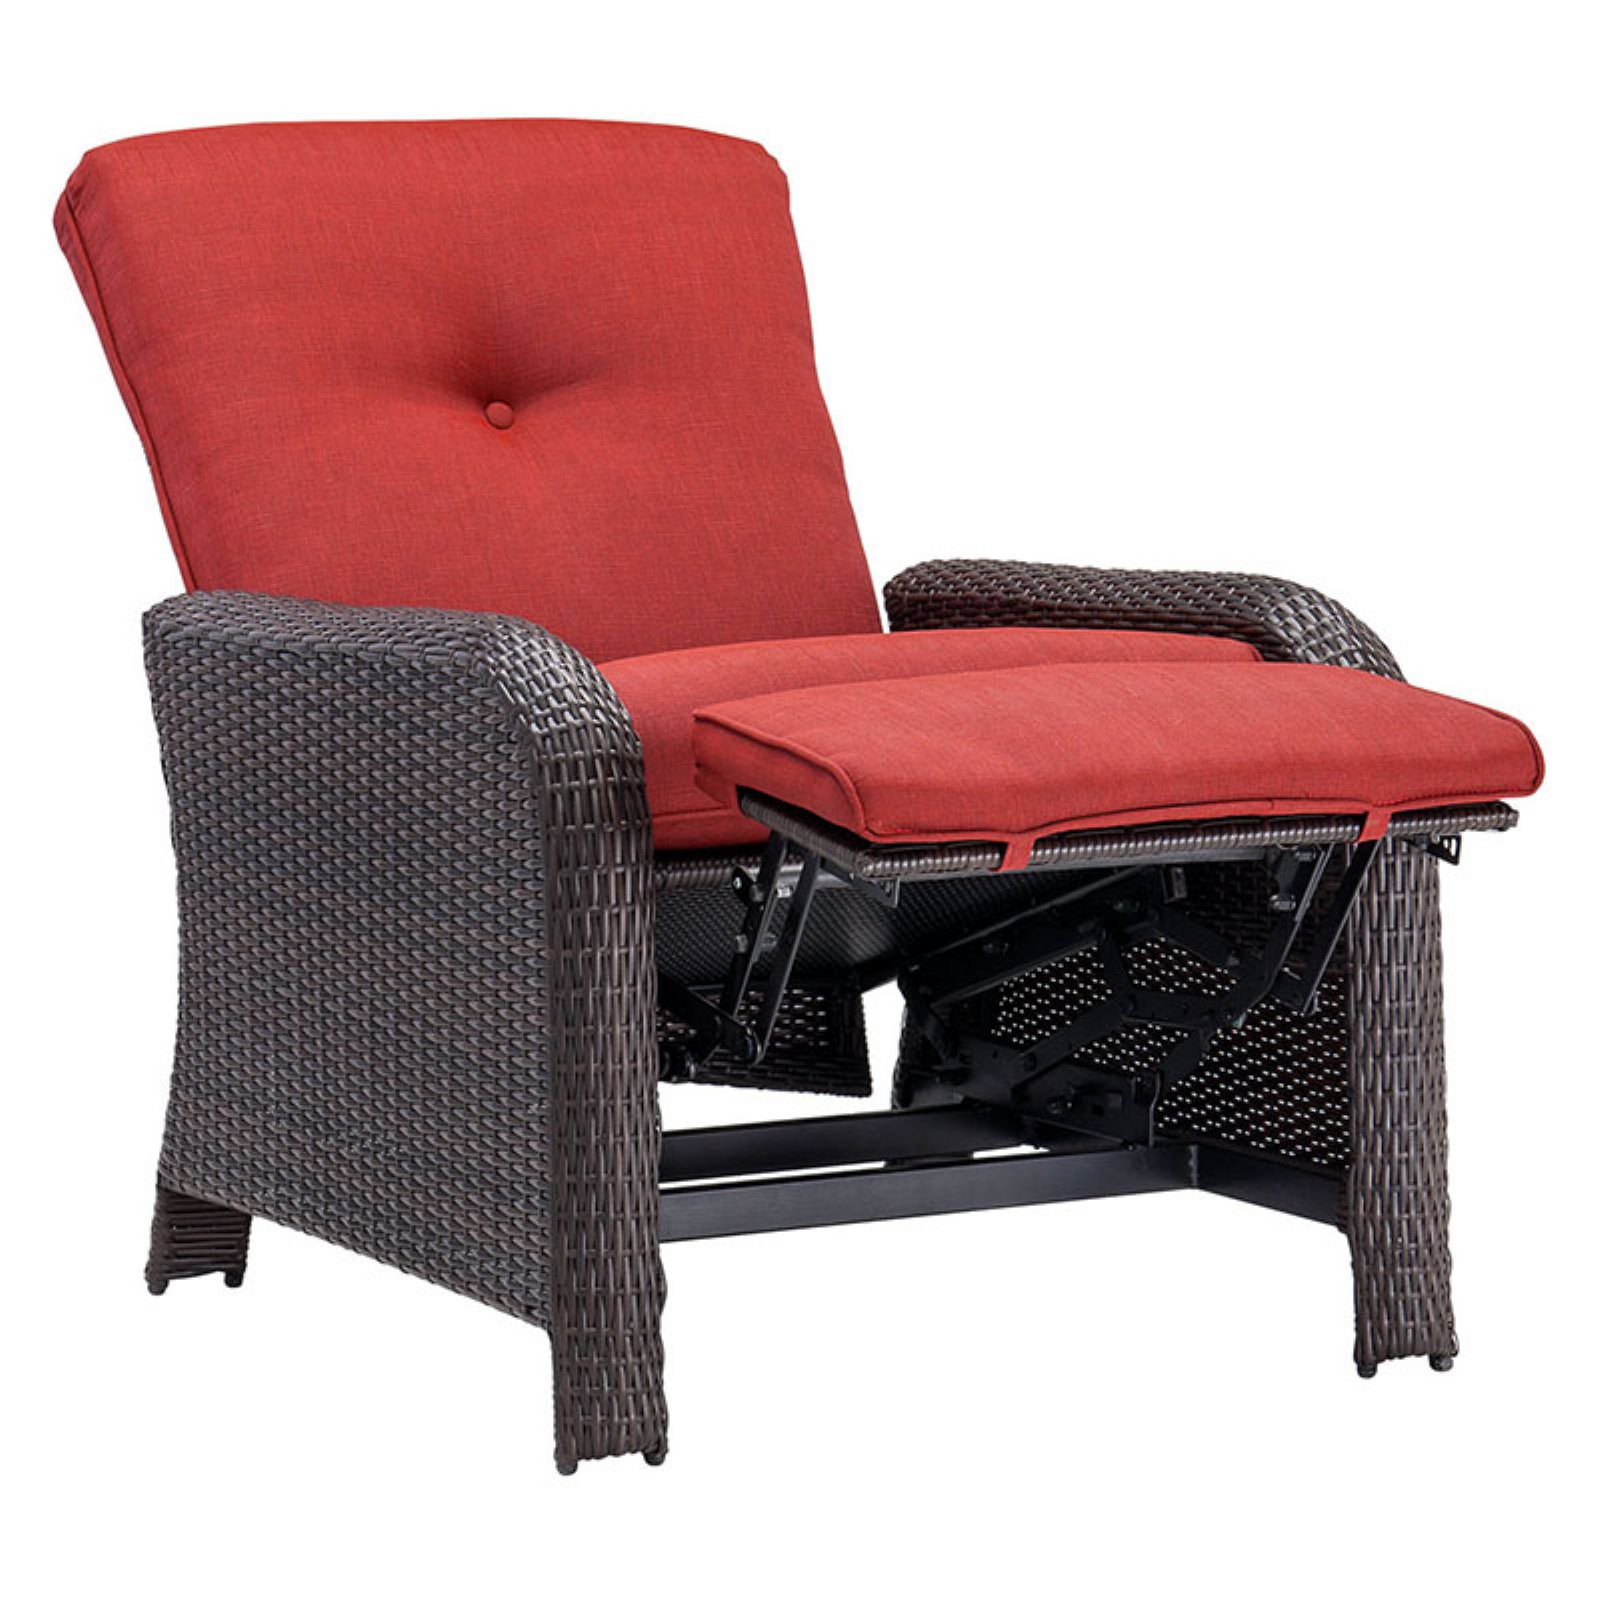 Hanover Strathmere Outdoor Luxury Recliner, Crimson Red